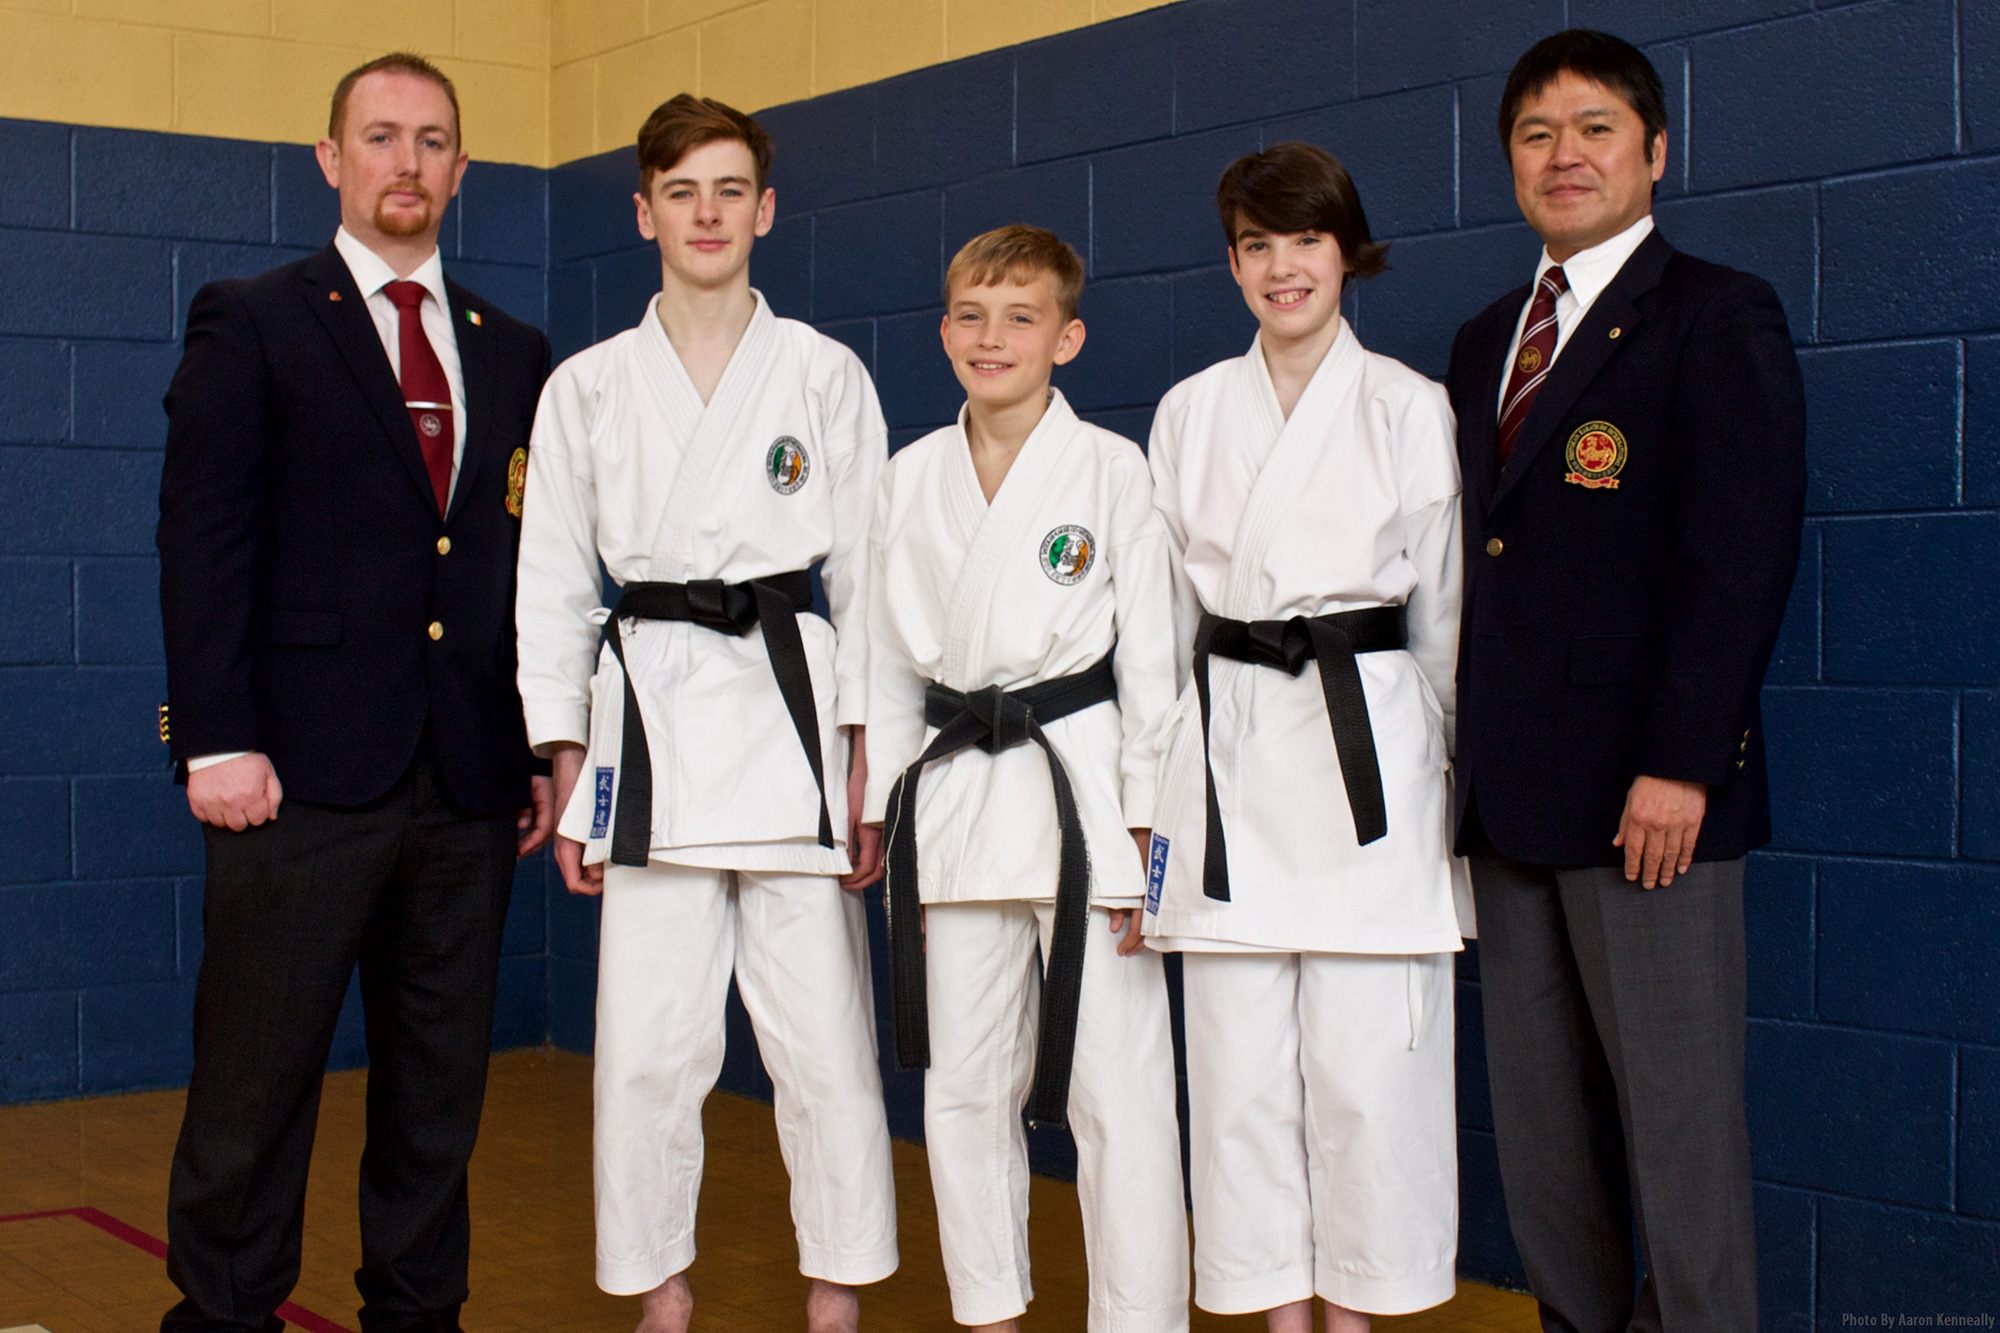 Bushido Karate Club congratulates Tom O Brien, Oisin O Sullivan and Elaina Laffan Twomey on getting their 1st Dan Black Belt from Shuseki Shihan Manabu Murakami 8th Dan SKIF at the November 2016 Grading and Training Seminar.  Also pictured Sensei Aaron Kenneally 5th Dan SKIF